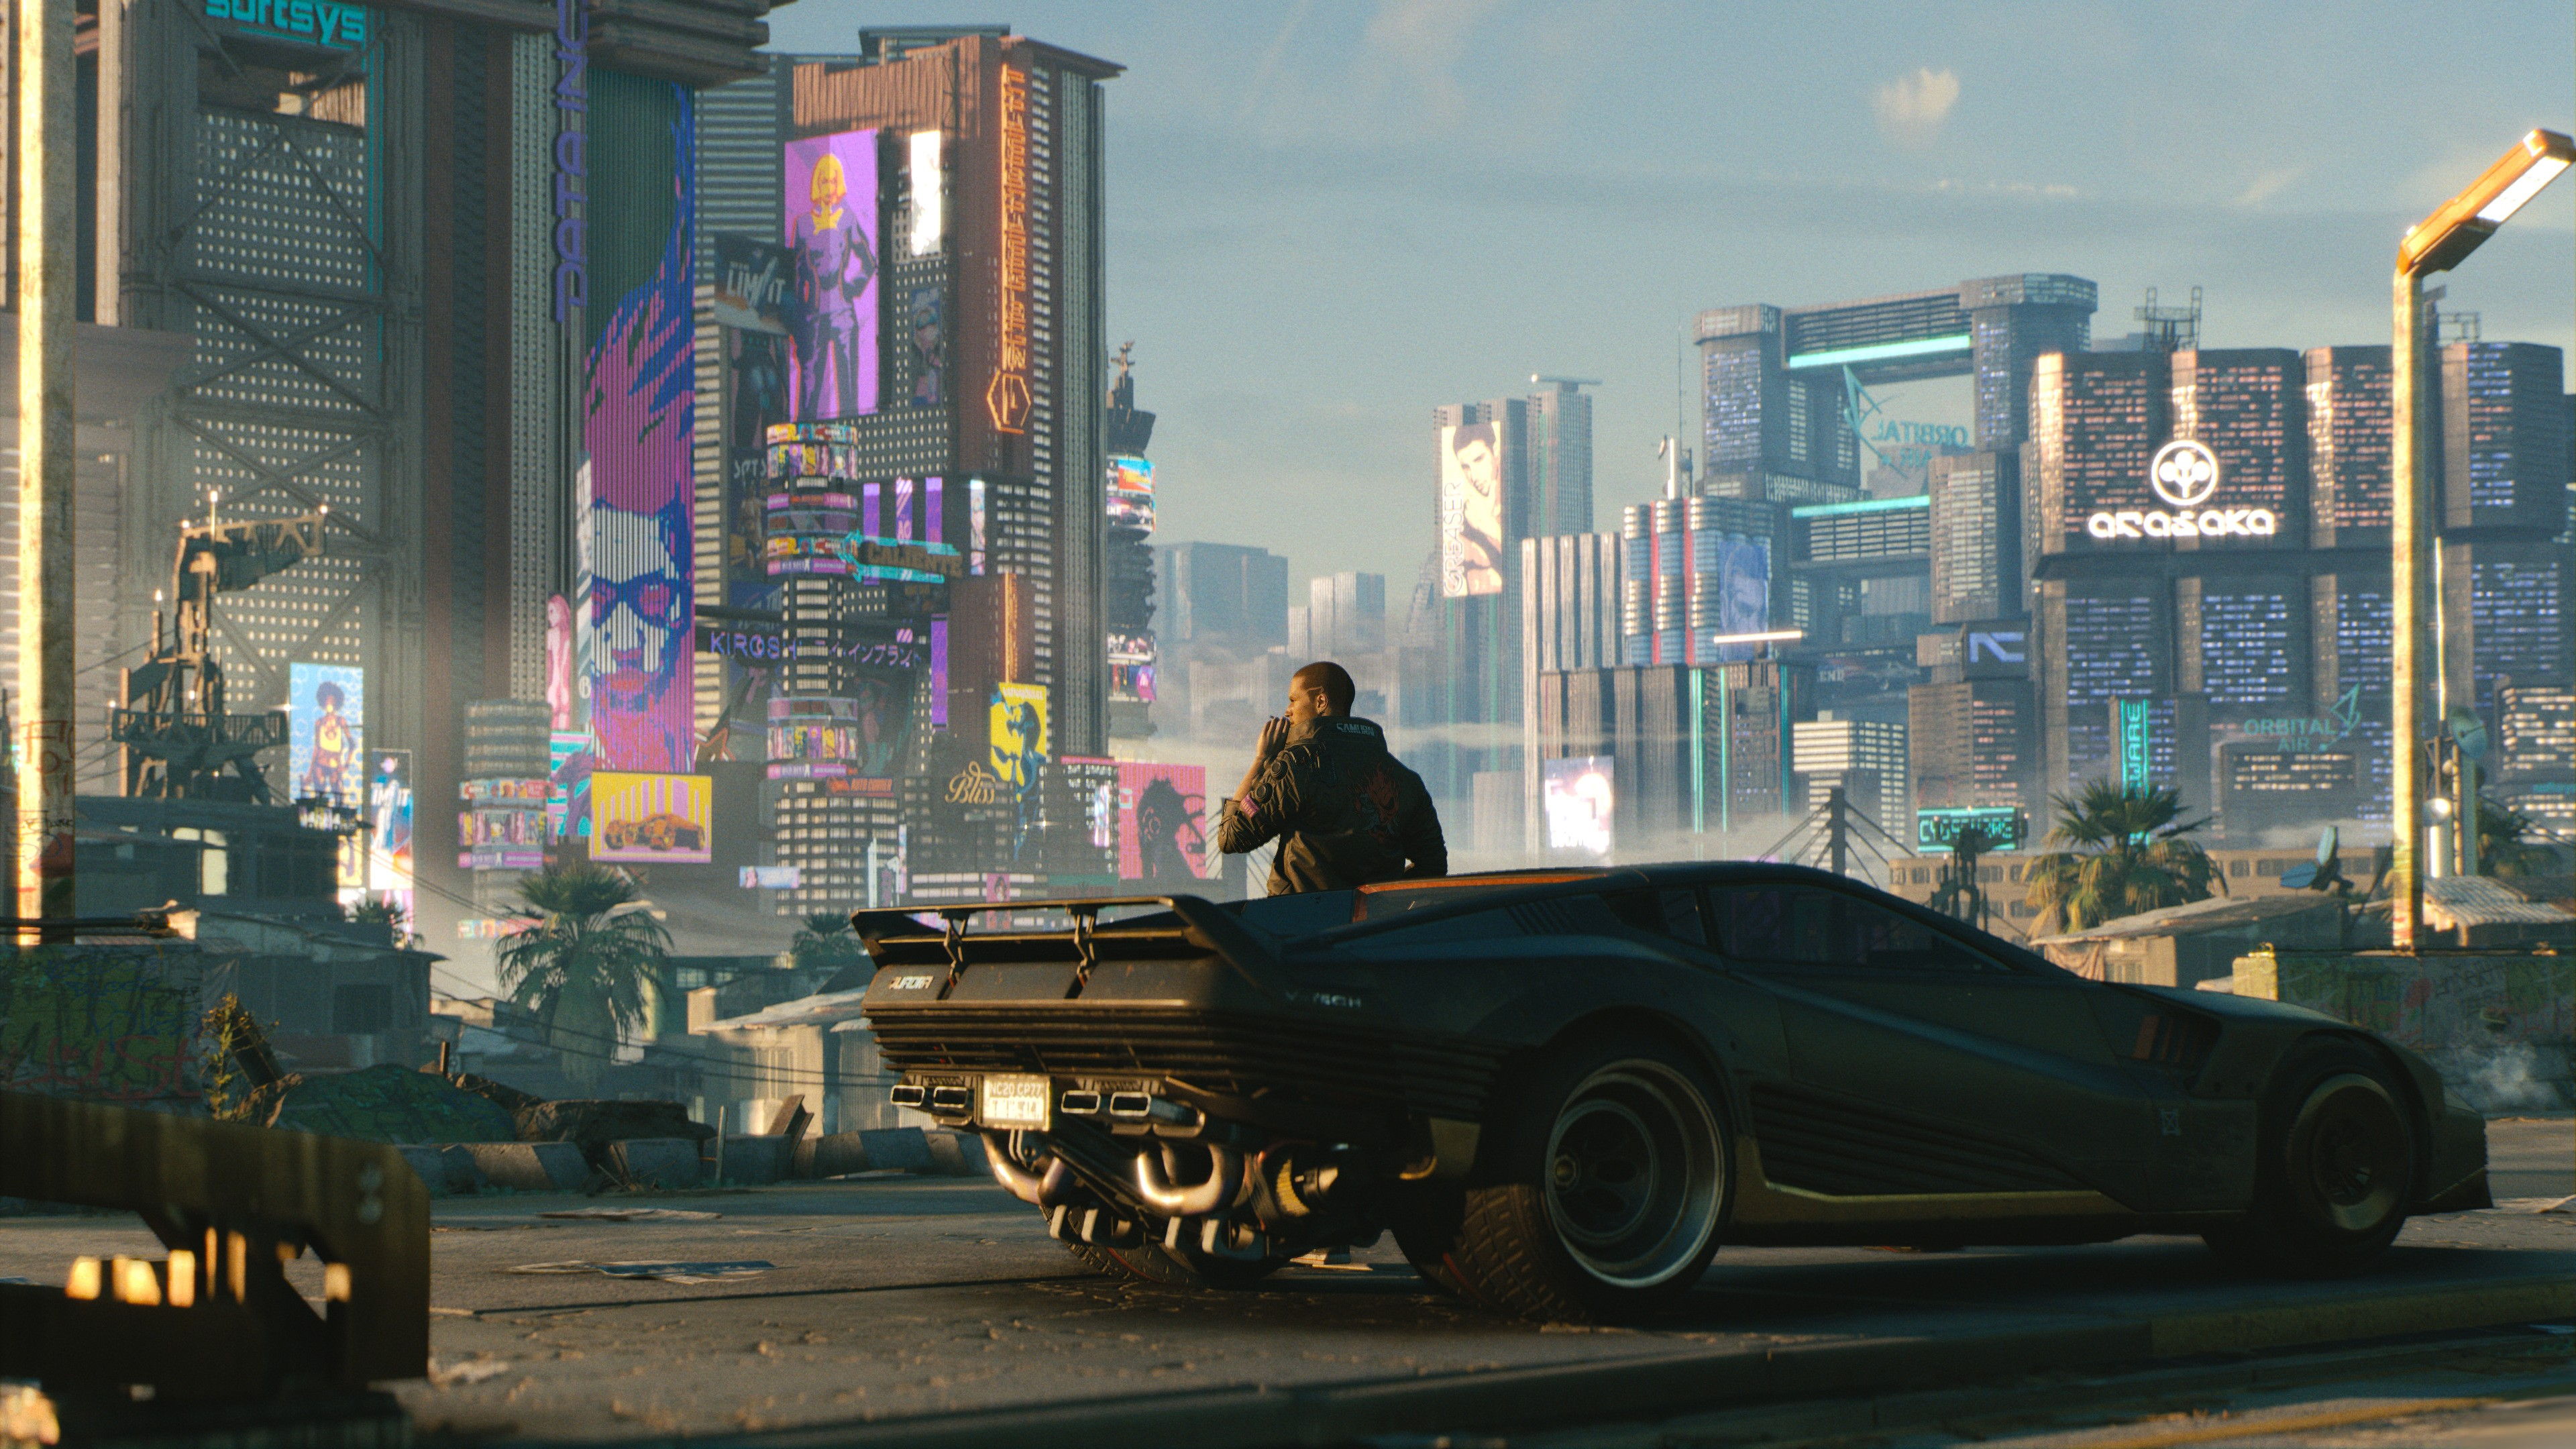 1920x1080 Cars Wallpaper Wallpaper Cyberpunk 2077 E3 2018 Screenshot 4k Games